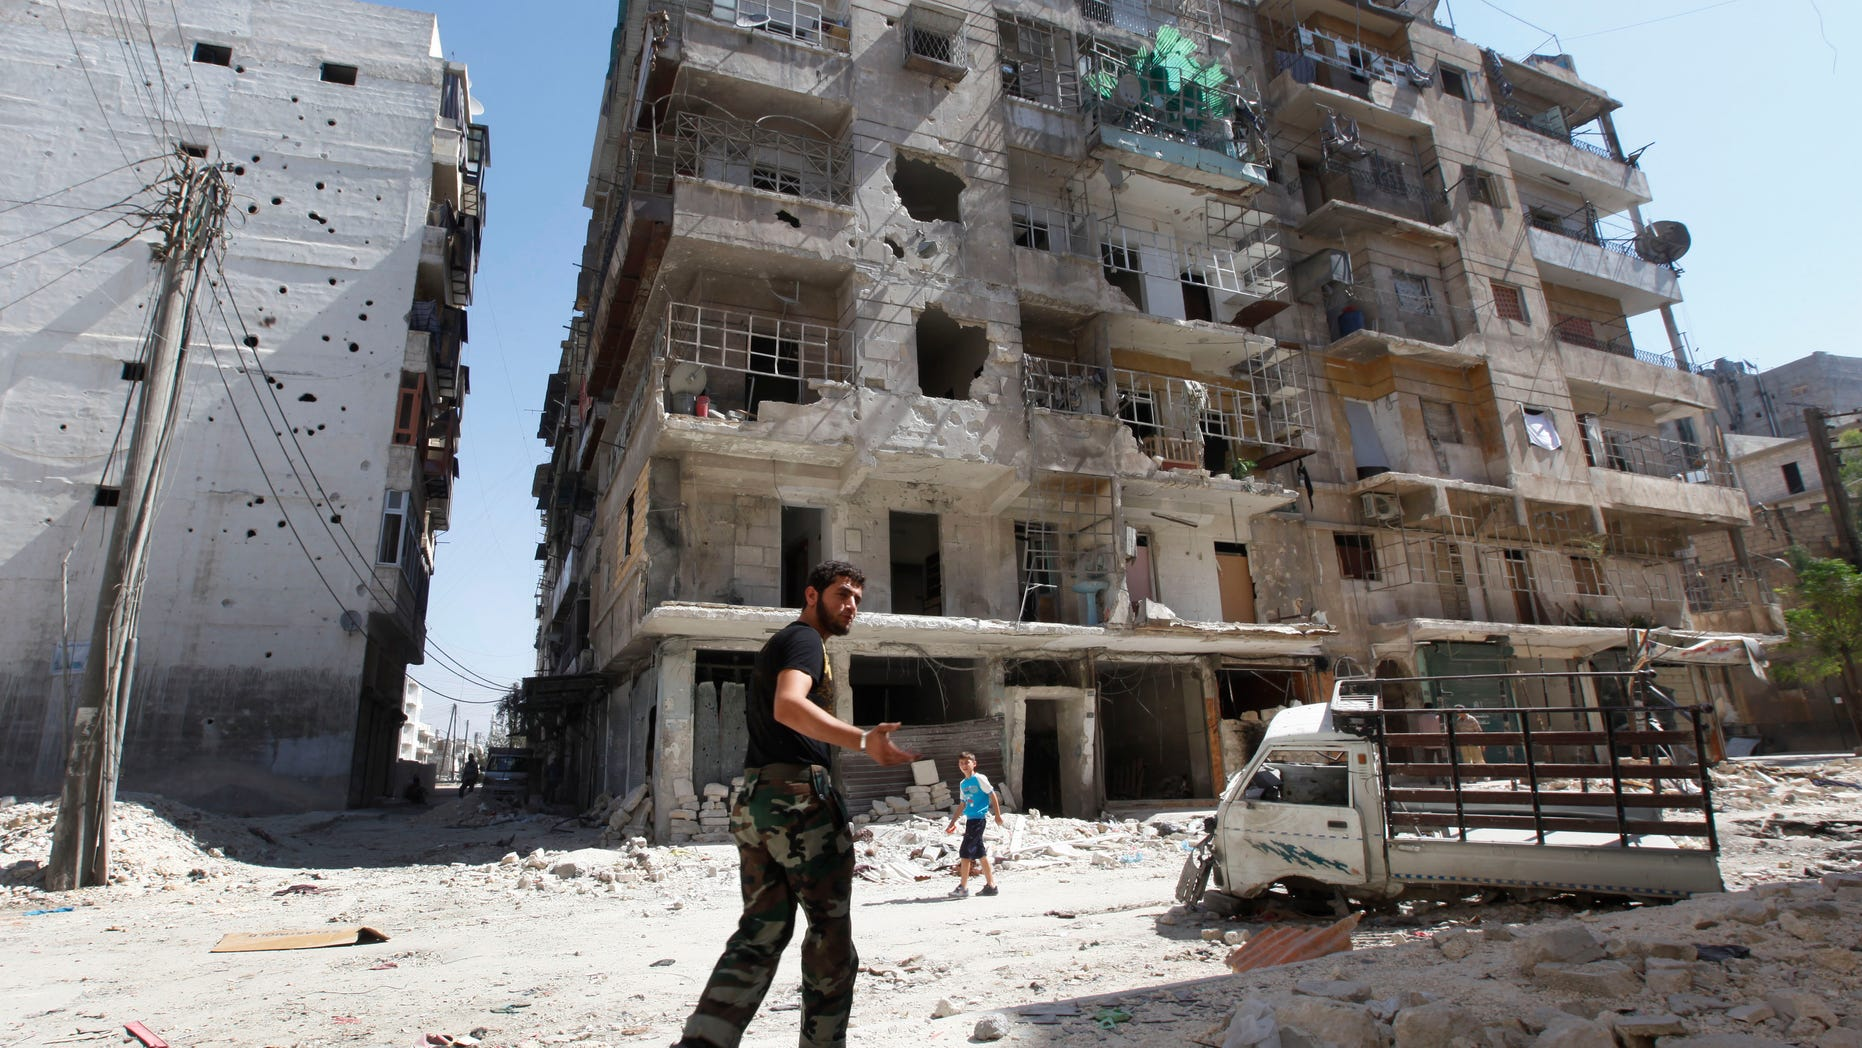 A Frre Syrian Army soldier, walks next of a destroyed building that was attacked by a Syrian government airstrike earlier in the day at al-Shaar neighborhood, in Aleppo city, Syria, Monday Sept. 24, 2012. Most of those fighting the regime of President Bashar Assad are ordinary Syrians and soldiers who have defected, having become fed up with the authoritarian government, analysts say. But increasingly, foreign fighters and those adhering to an extremist Islamist ideology are turning up on the front lines. (AP Photo/Hussein Malla)